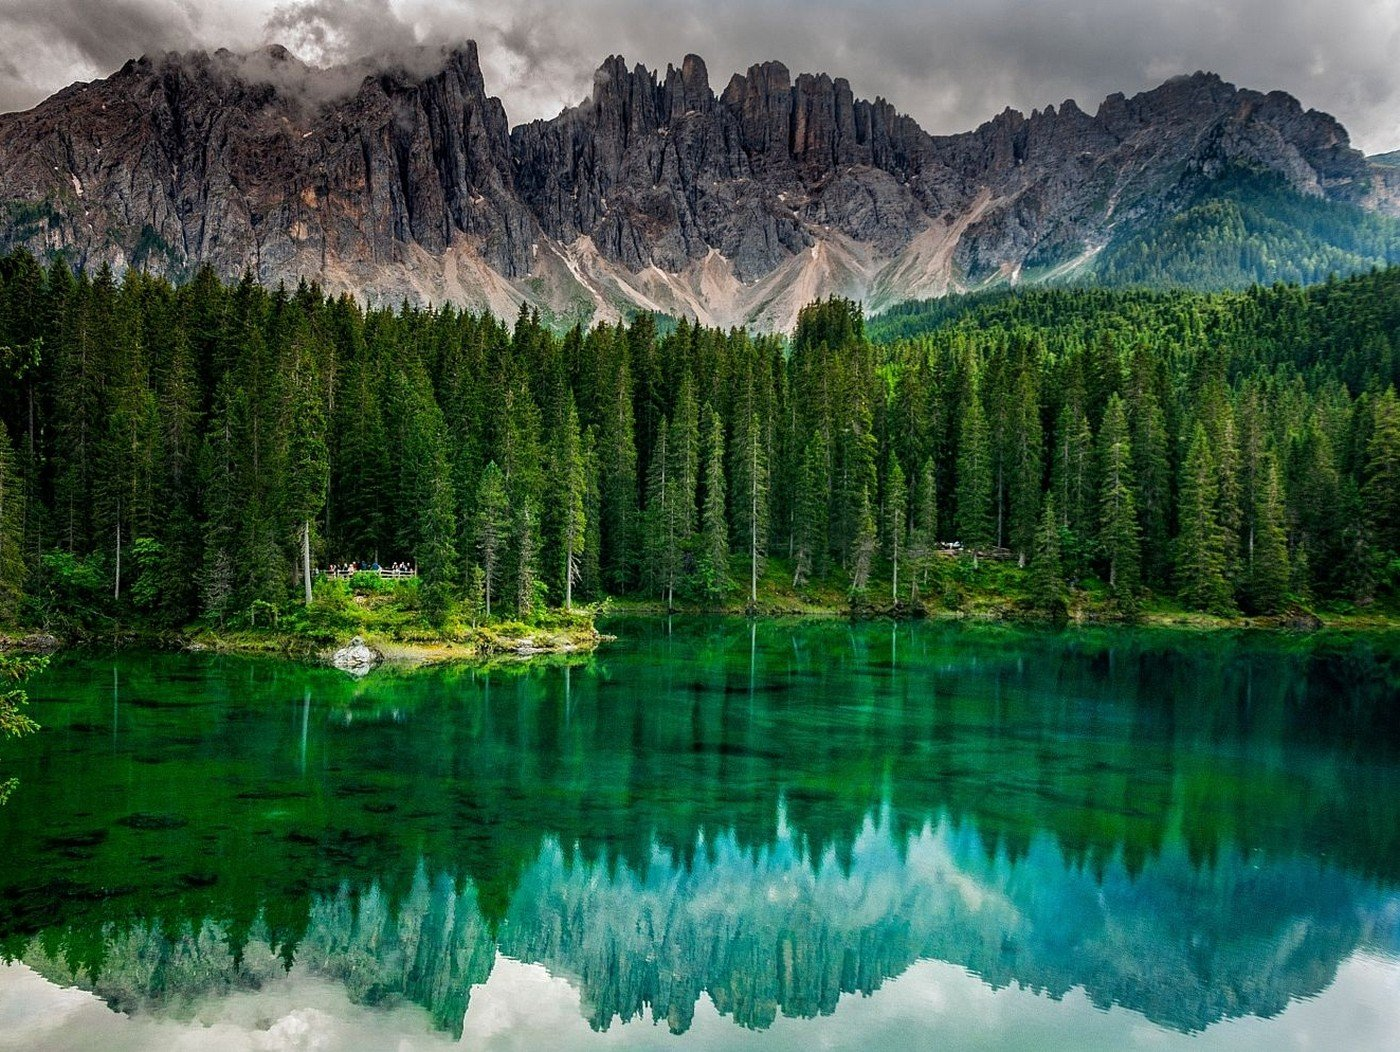 nature, Landscape, Photography, Lake, Calm waters, Reflection, Forest, Mountains, Trees, Emerald, Green, Summer, Alps, Italy Wallpaper